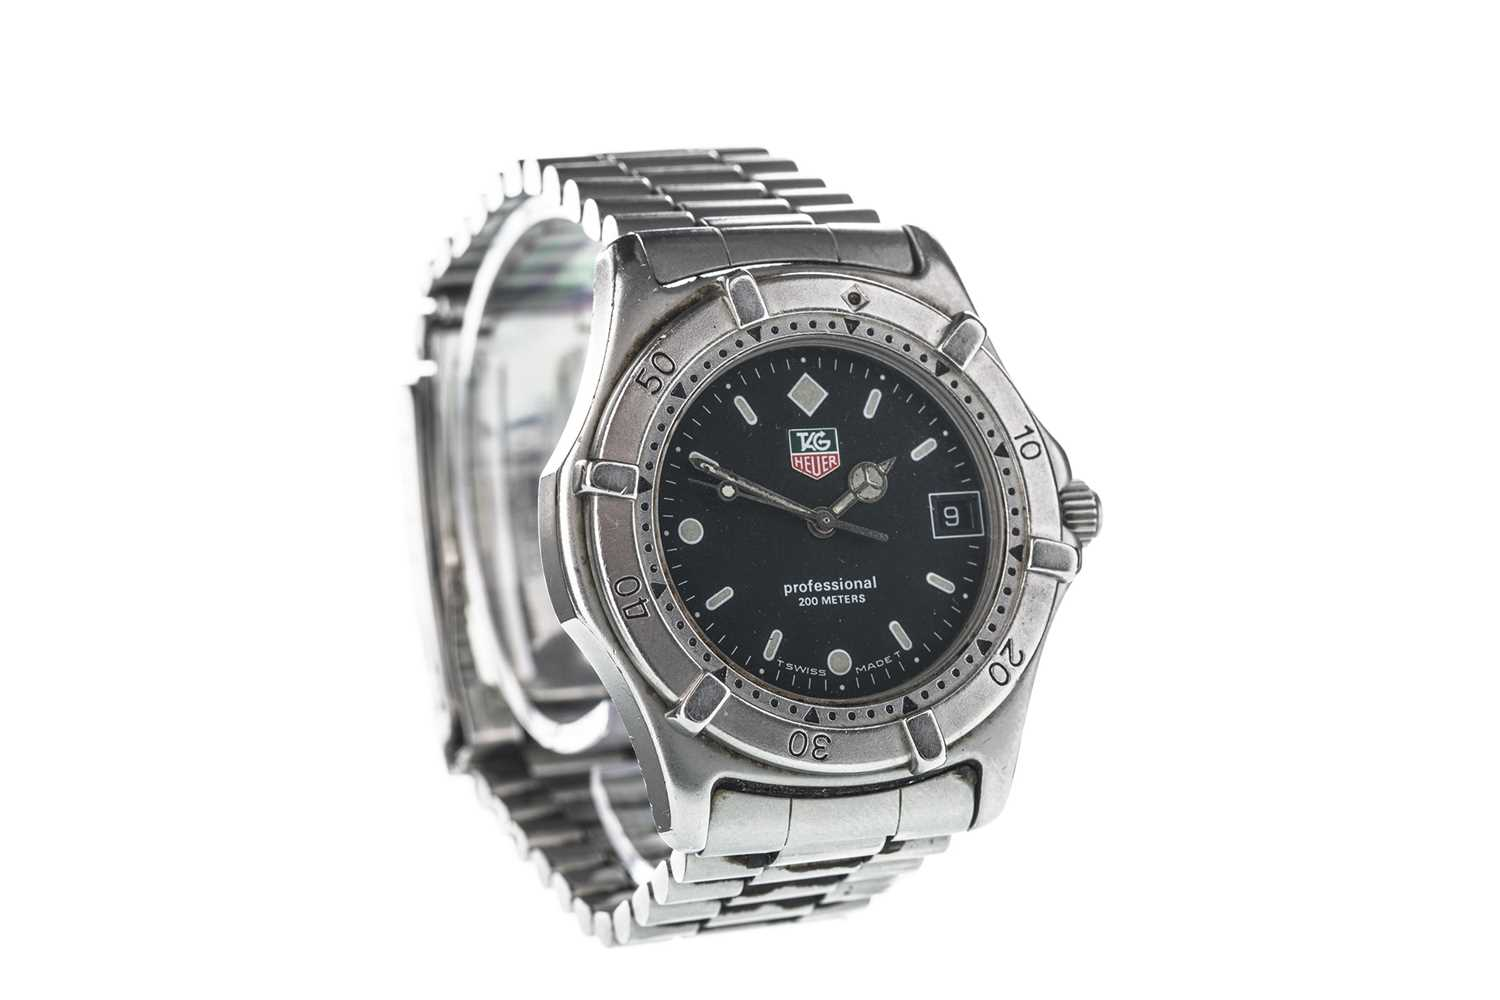 Lot 722-A GENTLEMAN'S TAG HEUER PROFESSIONAL STAINLESS STEEL QUARTZ WRIST WATCH